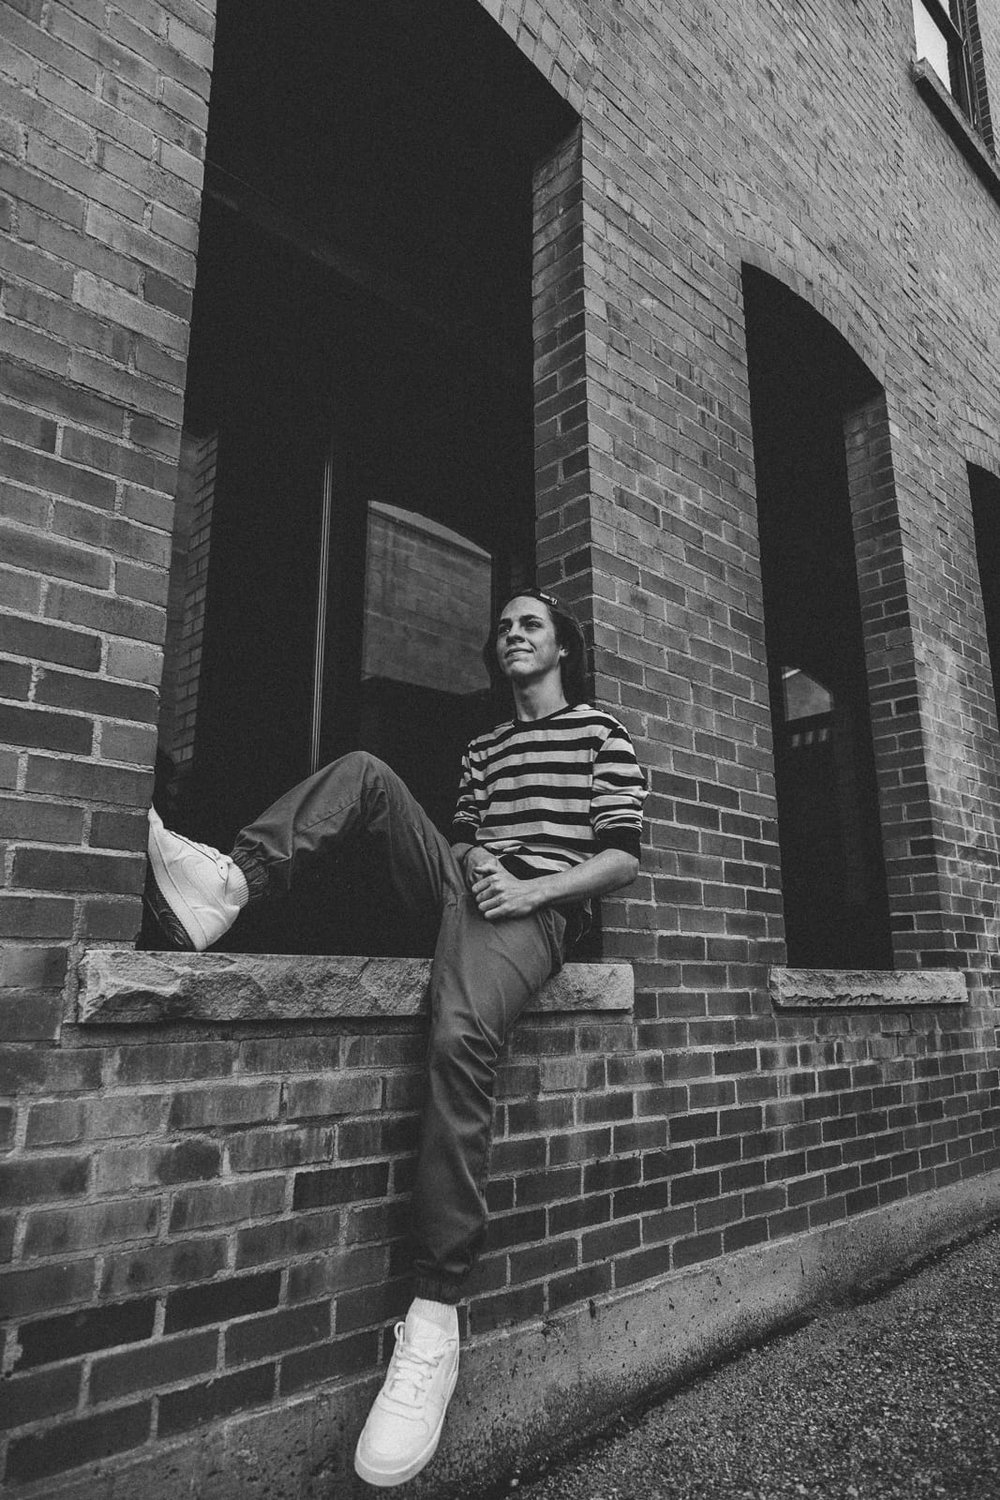 Wide portrait of a young man sitting on a ledge and letting one leg dangle, in black and white.